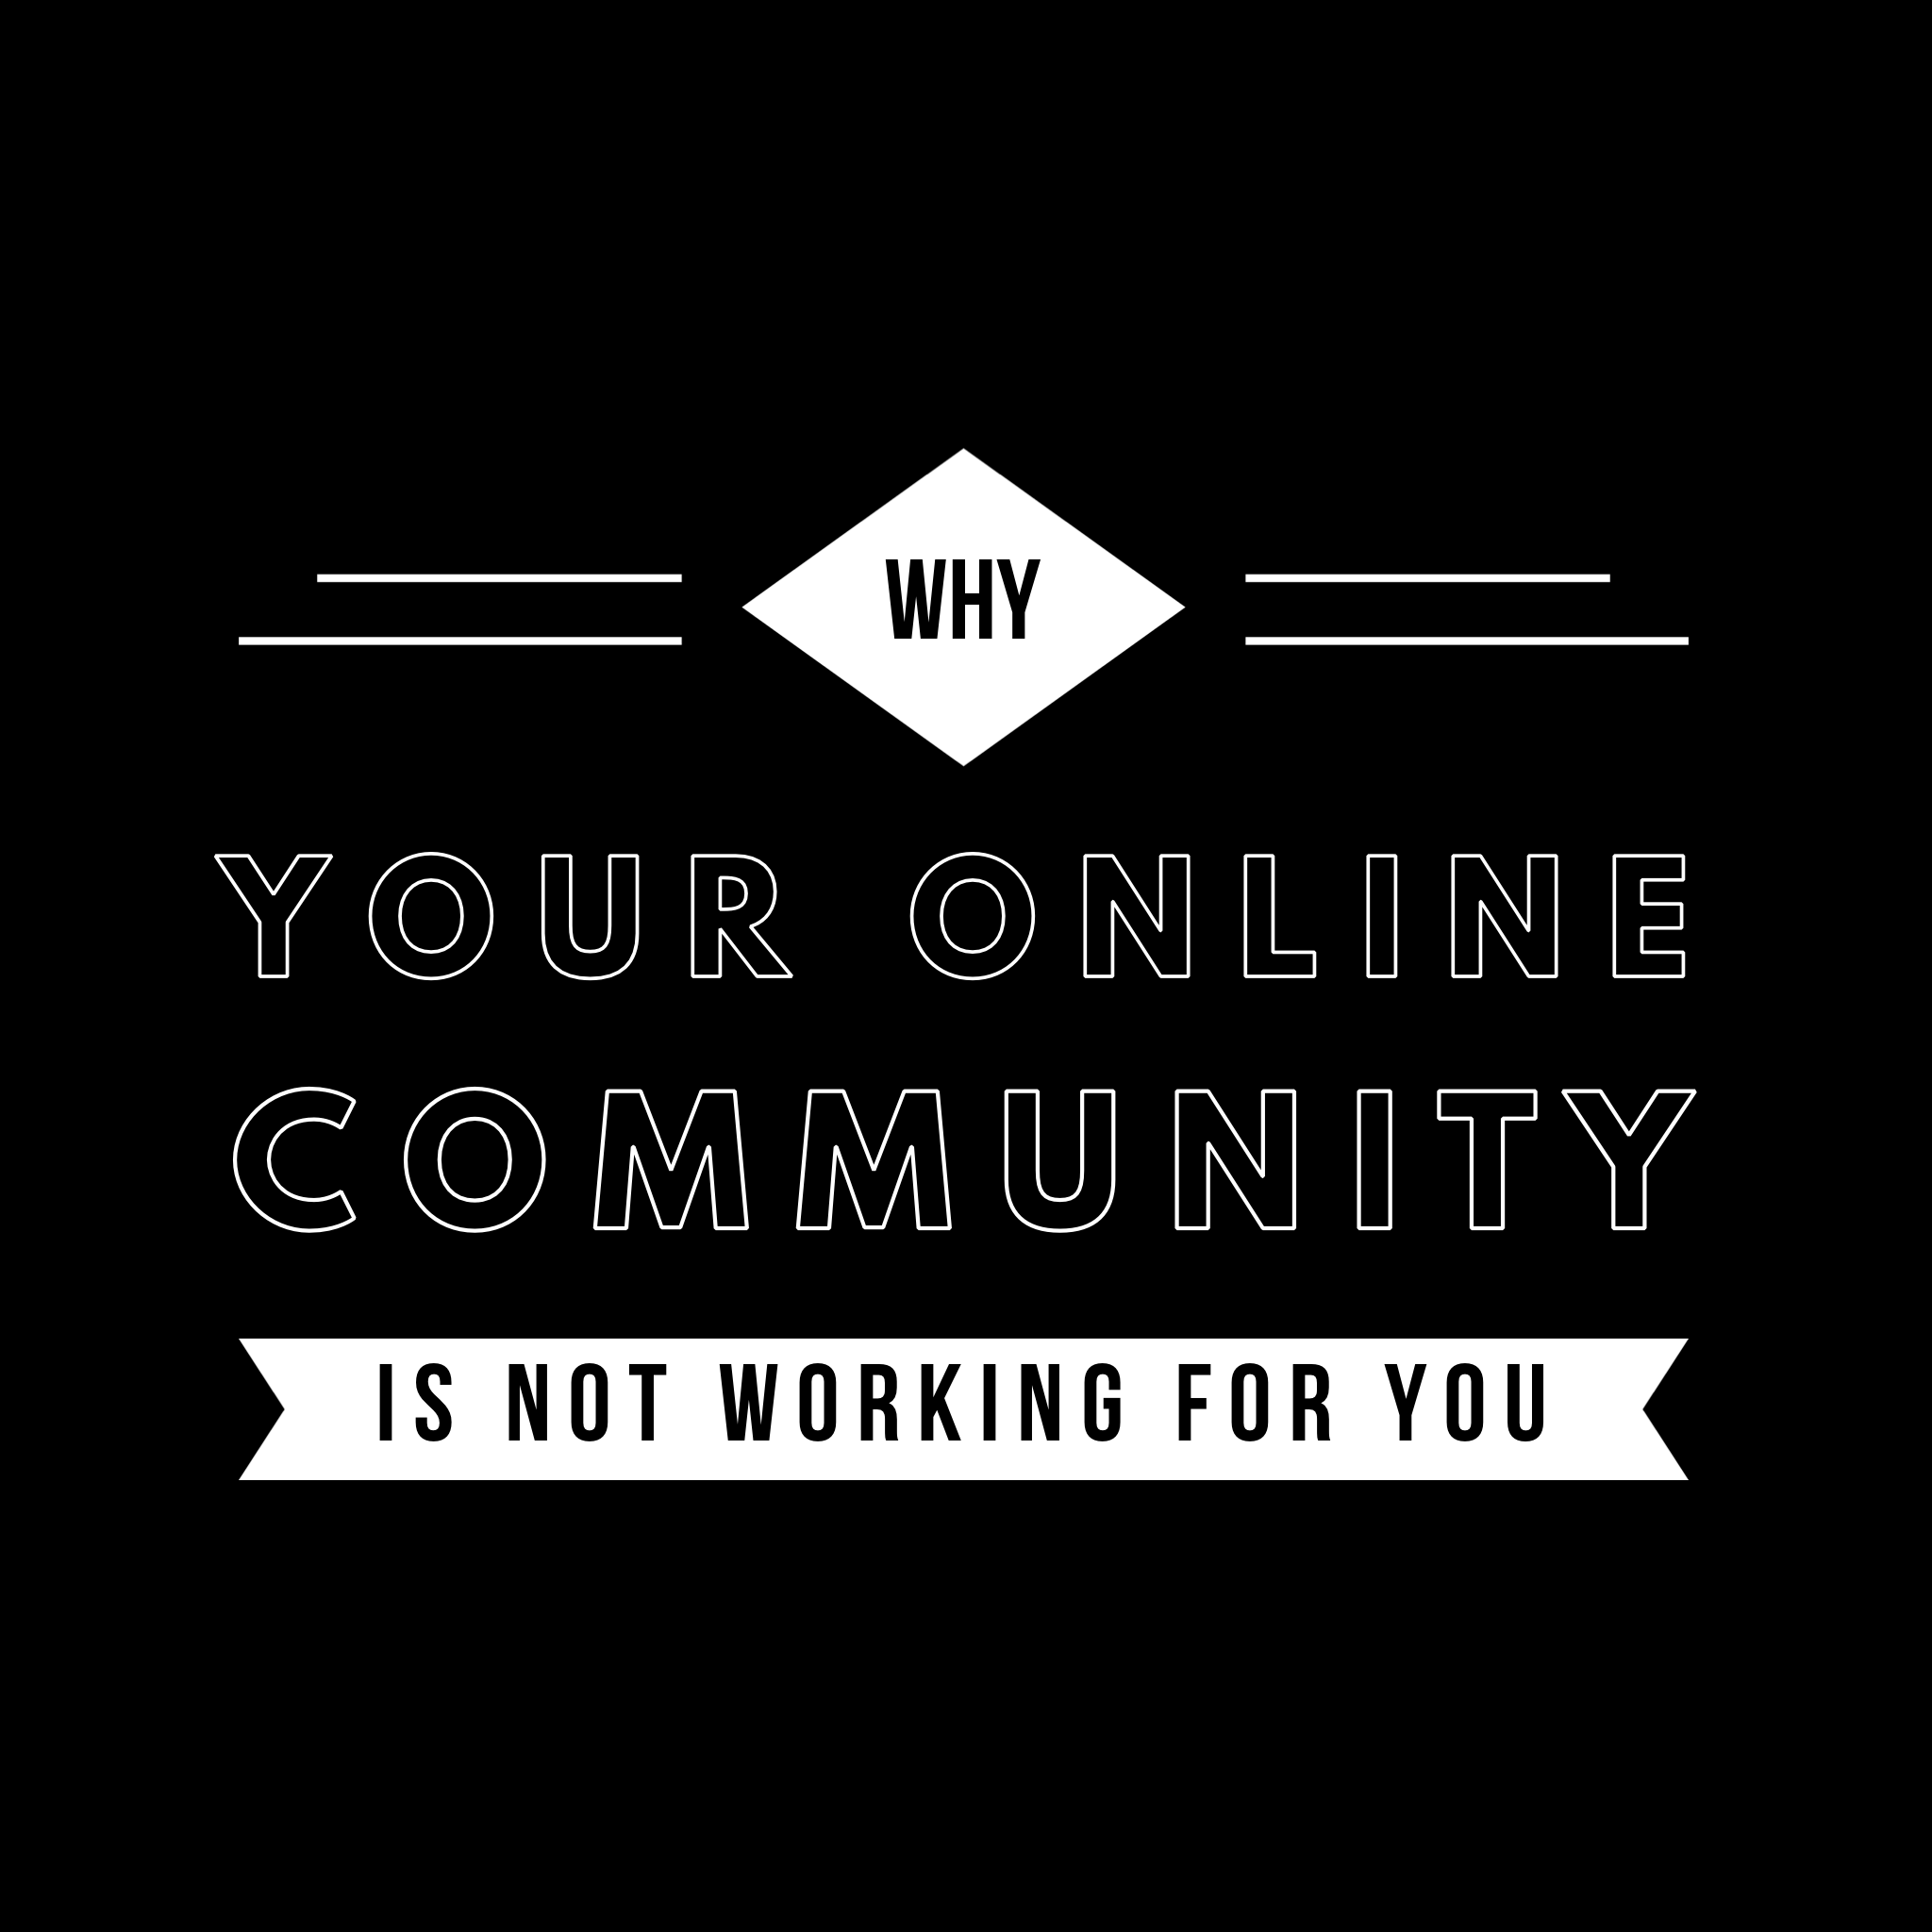 Why Your Online Community Is Not Working For You!